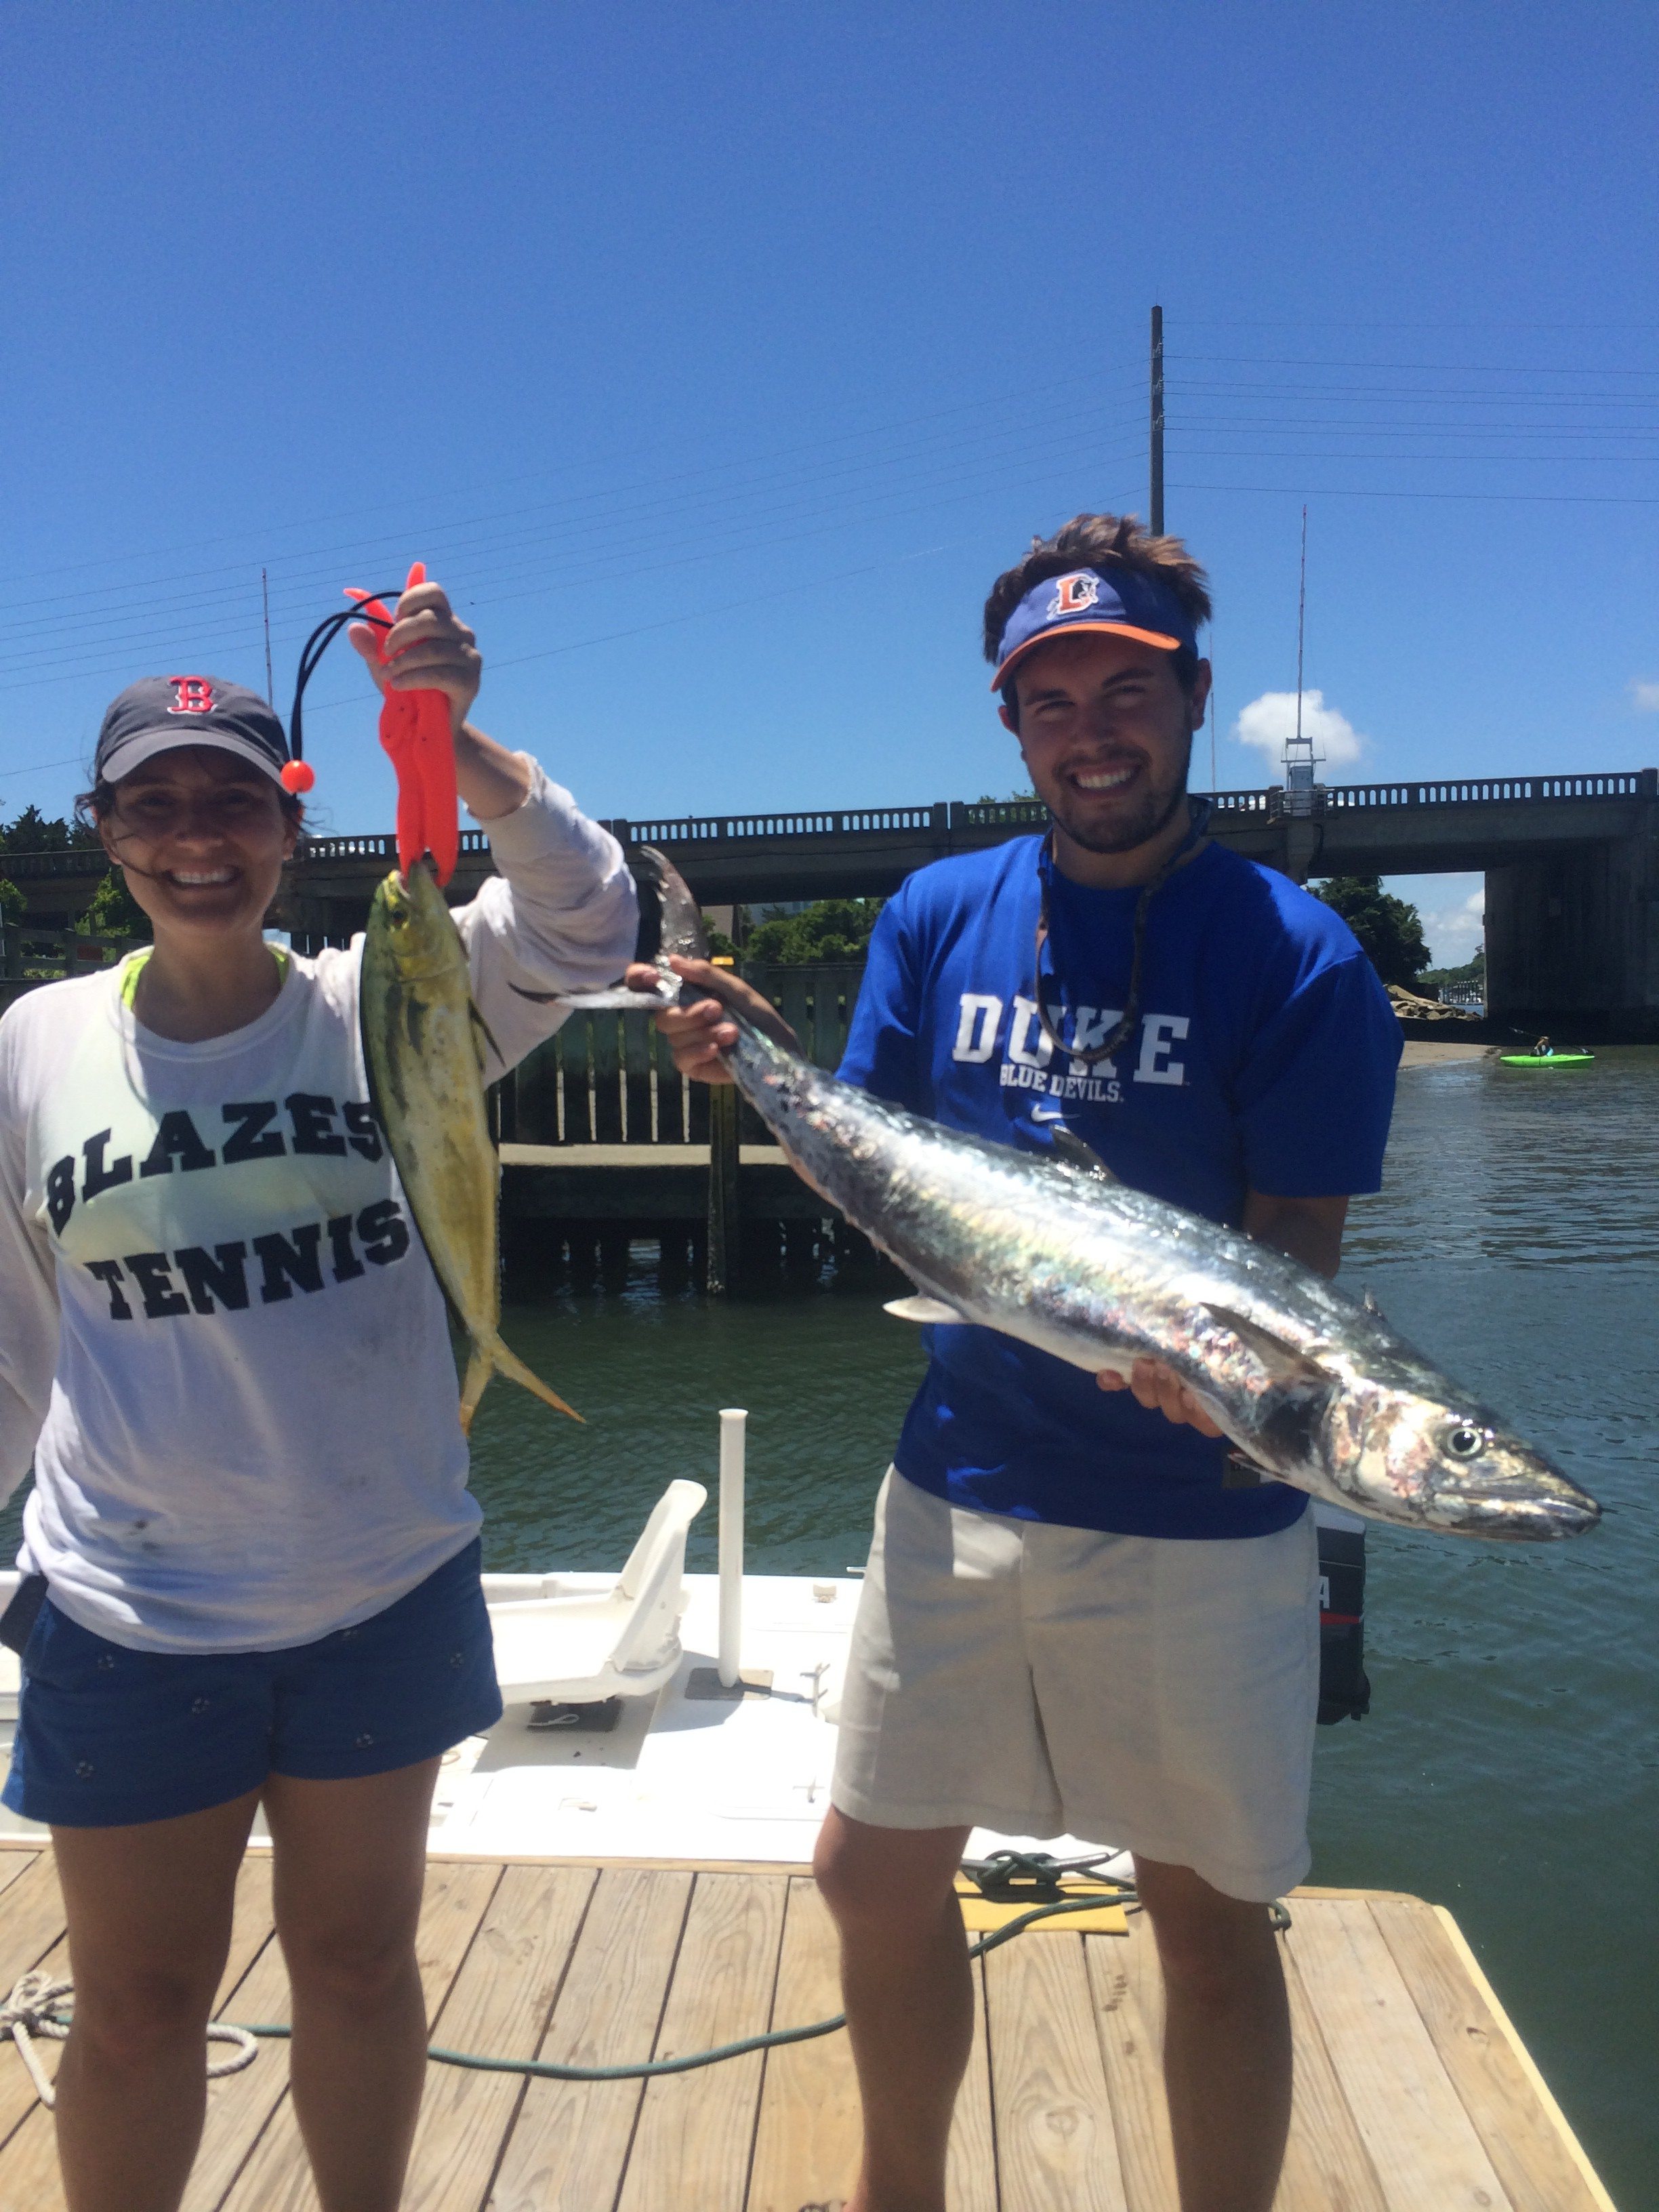 Topsail fishing charters plan a topsail island fishing trip for Topsail fishing report